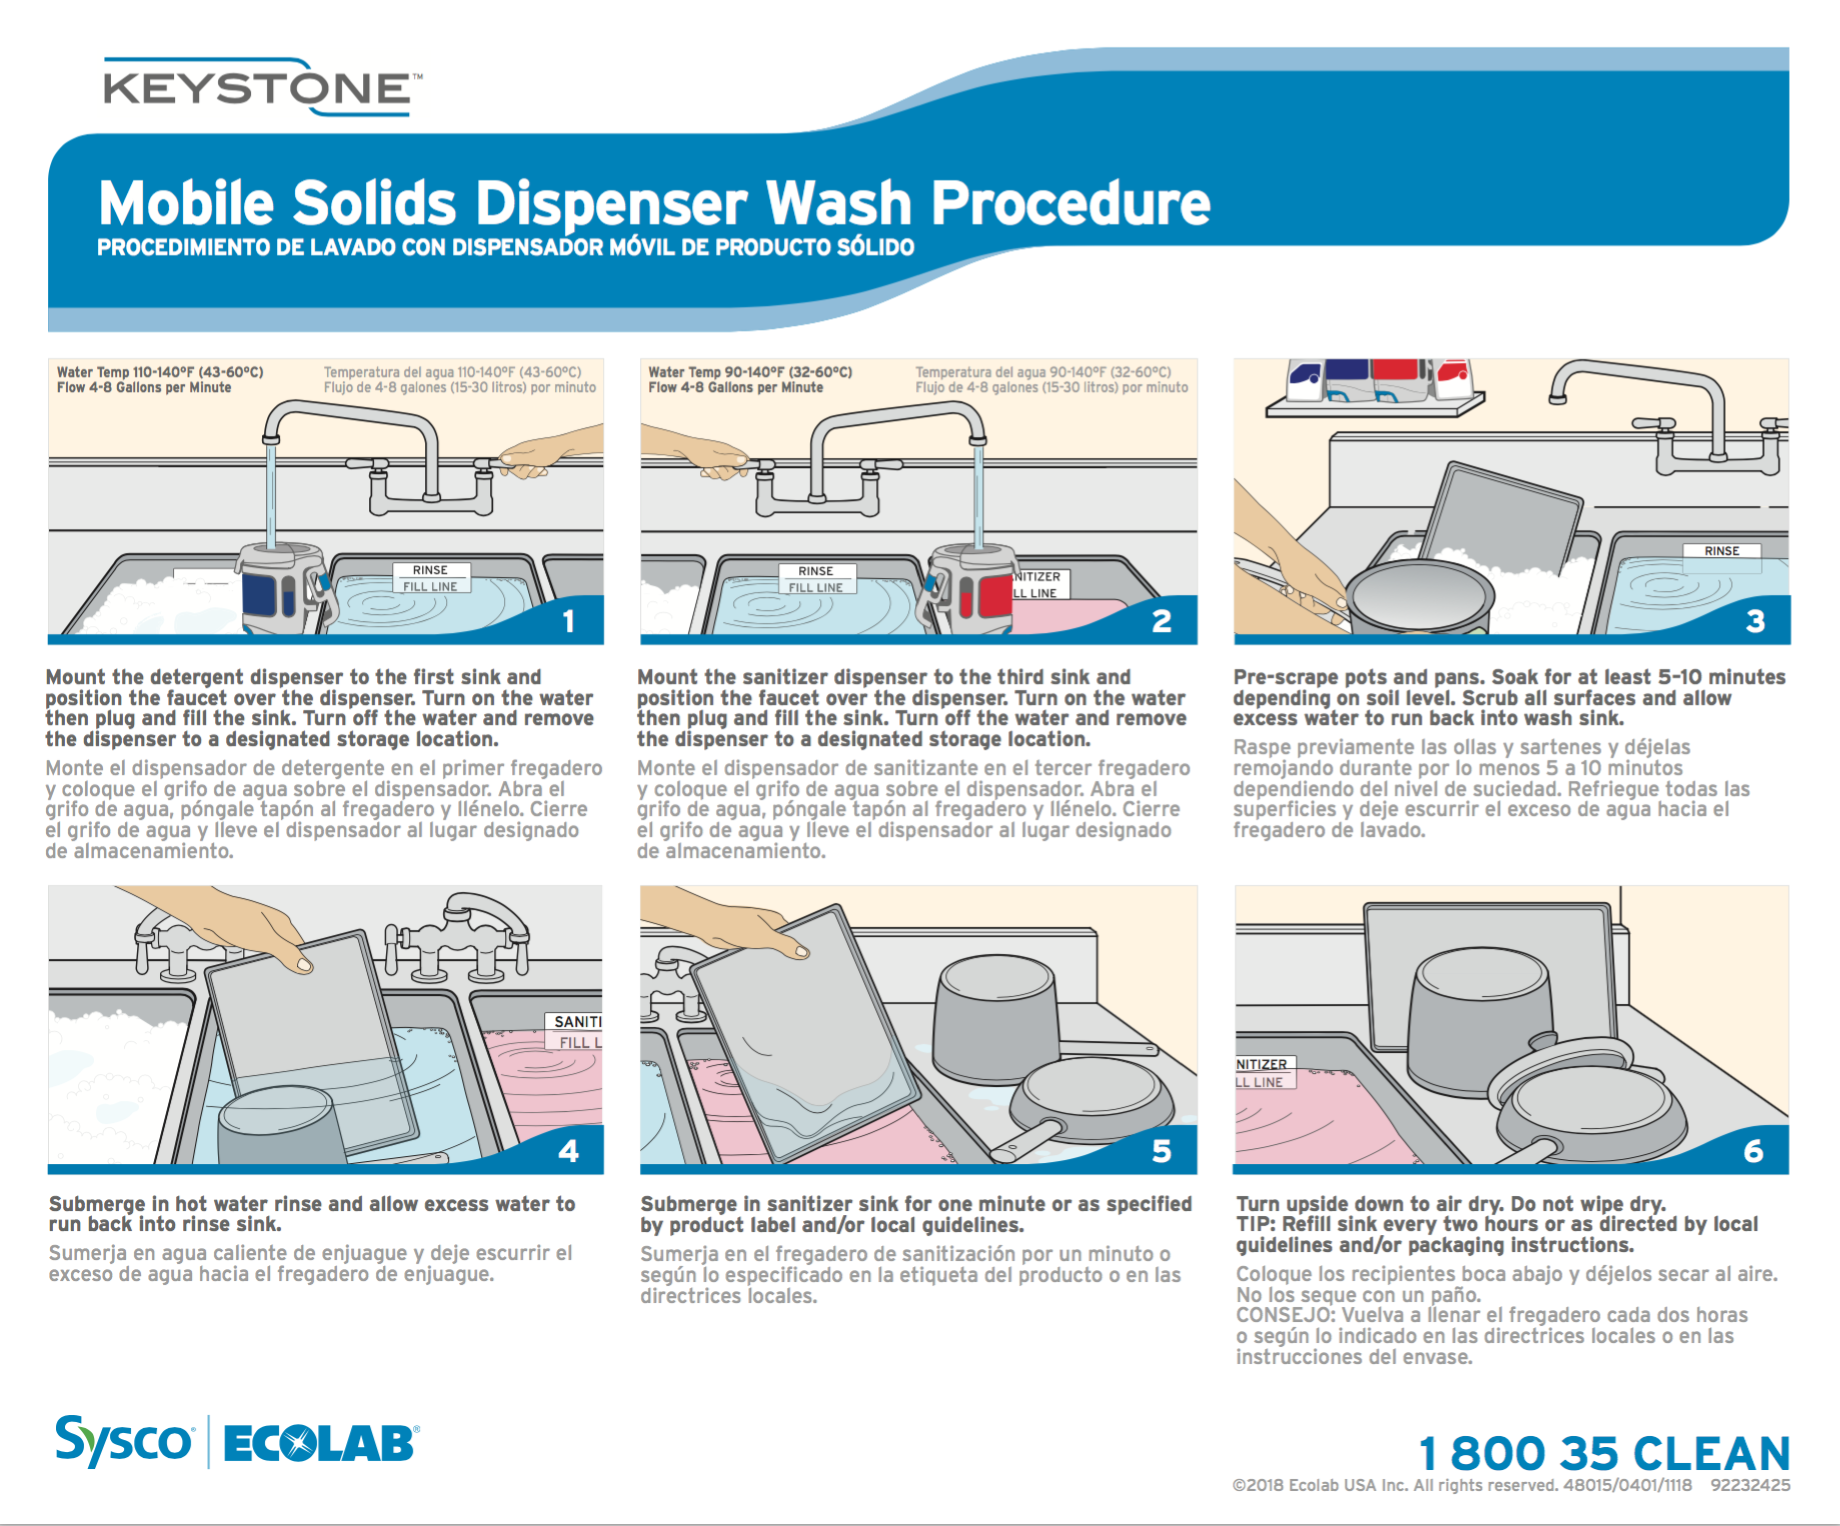 Keystone Mobile Solids Dispenser Wall Chart